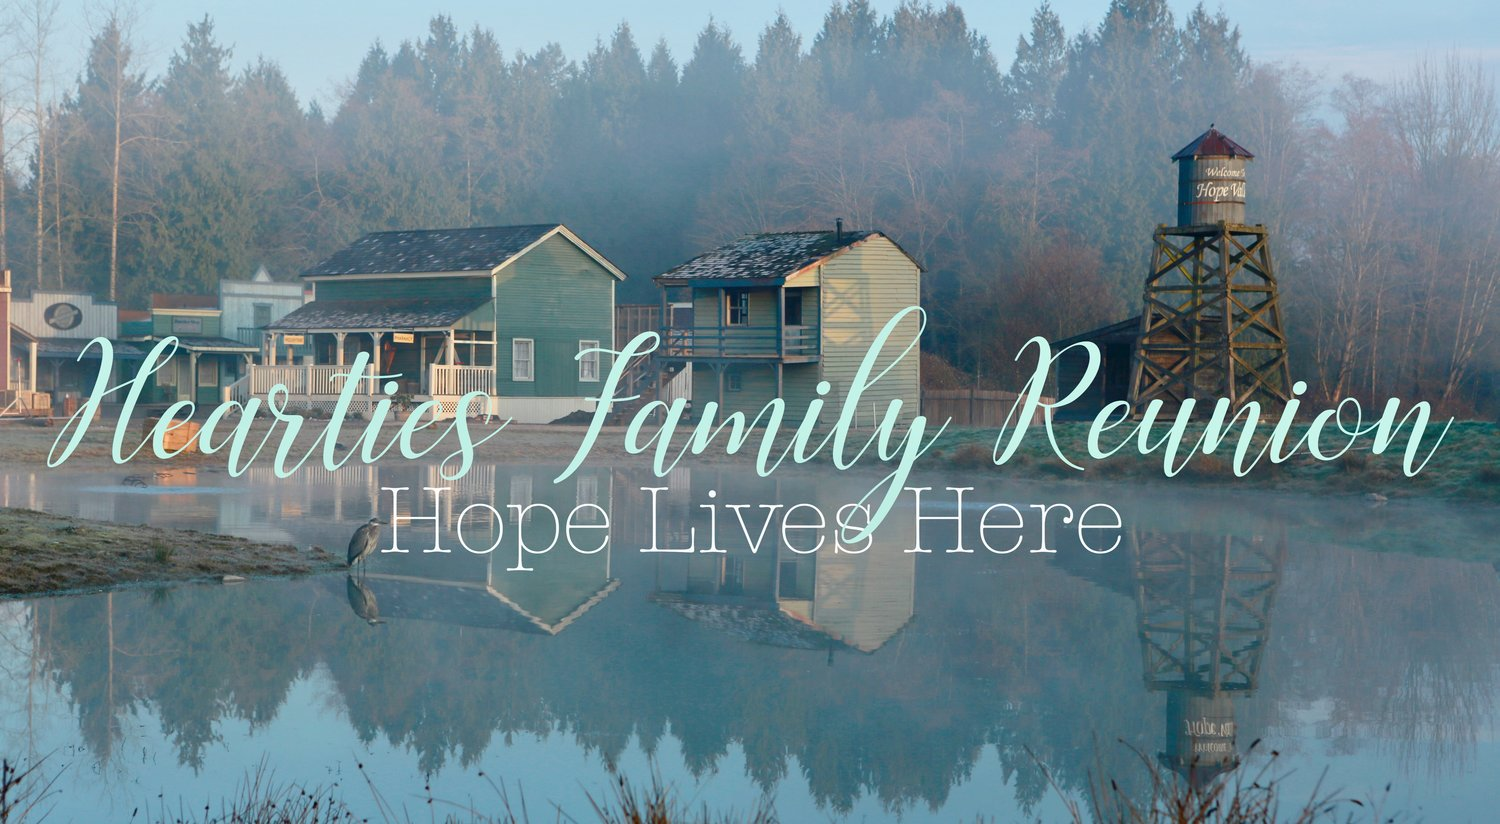 Hearties Family Reunion